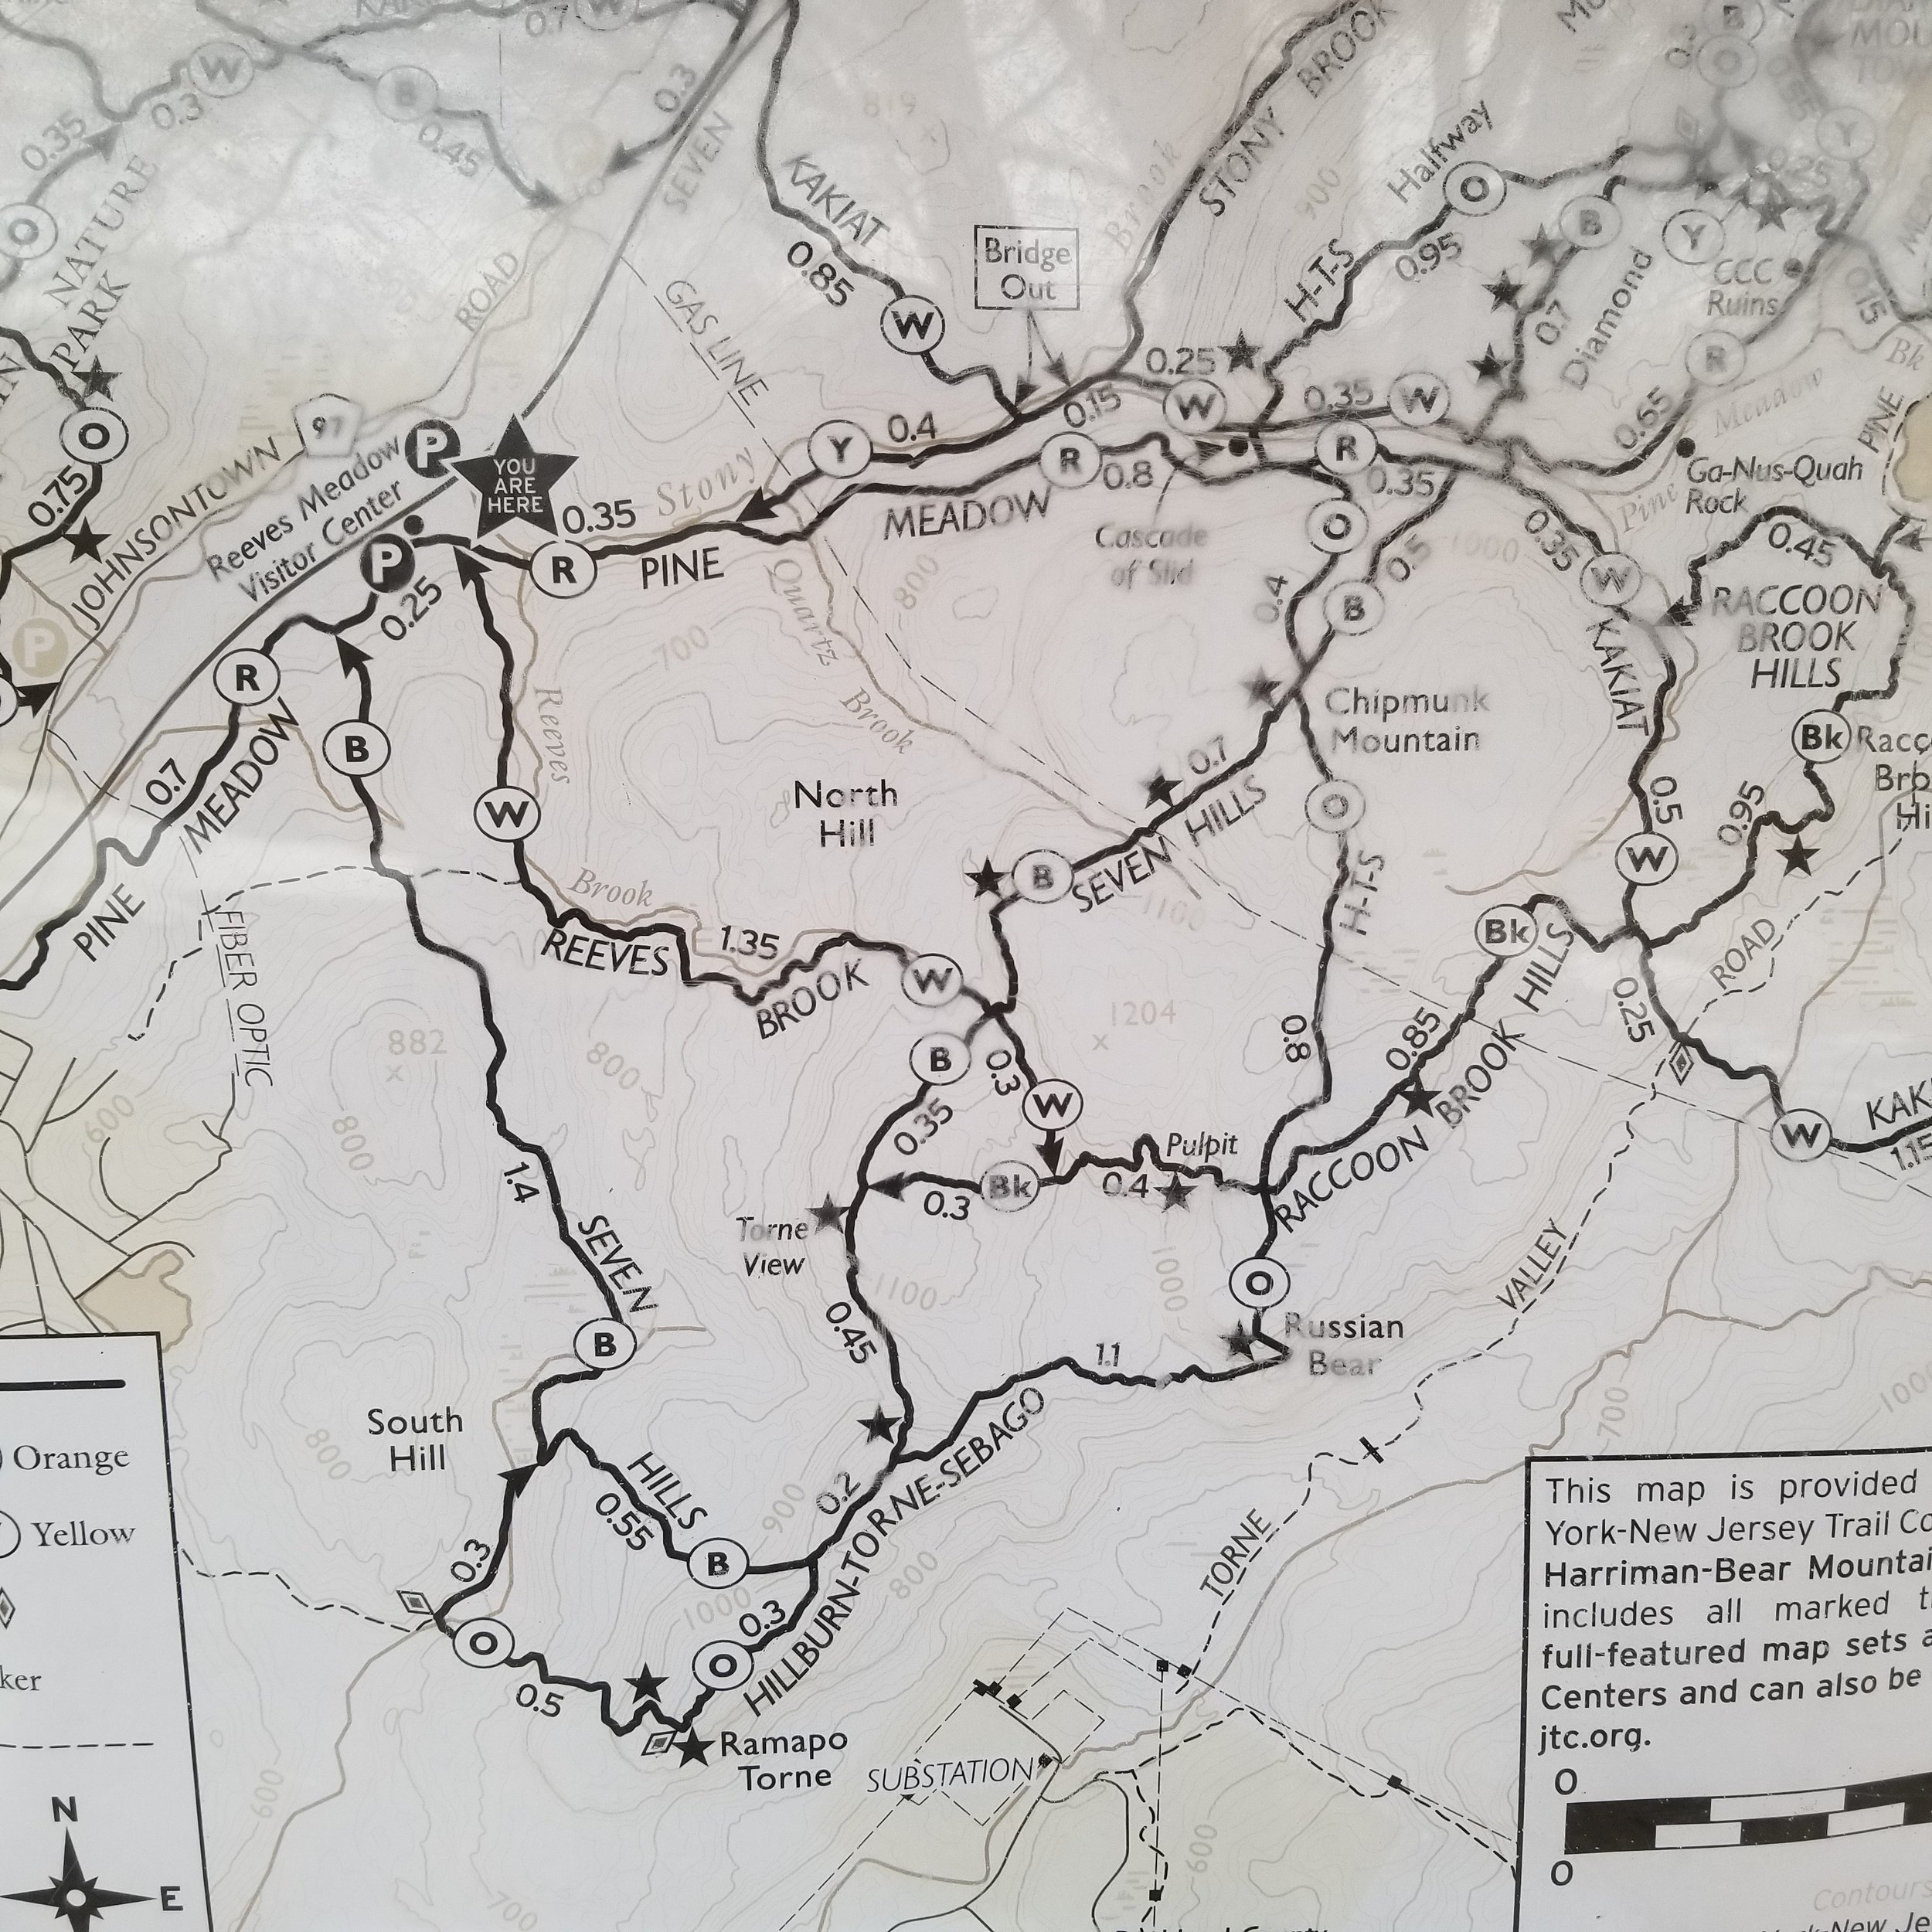 Following the advice of the recently-interviewed Adventurer and First-Responder Mark Silverman (Listen to  Bike Shop Radio ), I took a picture of the trail map as posted on the Ranger Station board. This would hopefully augment my maps and digital files with the latest trail updates.